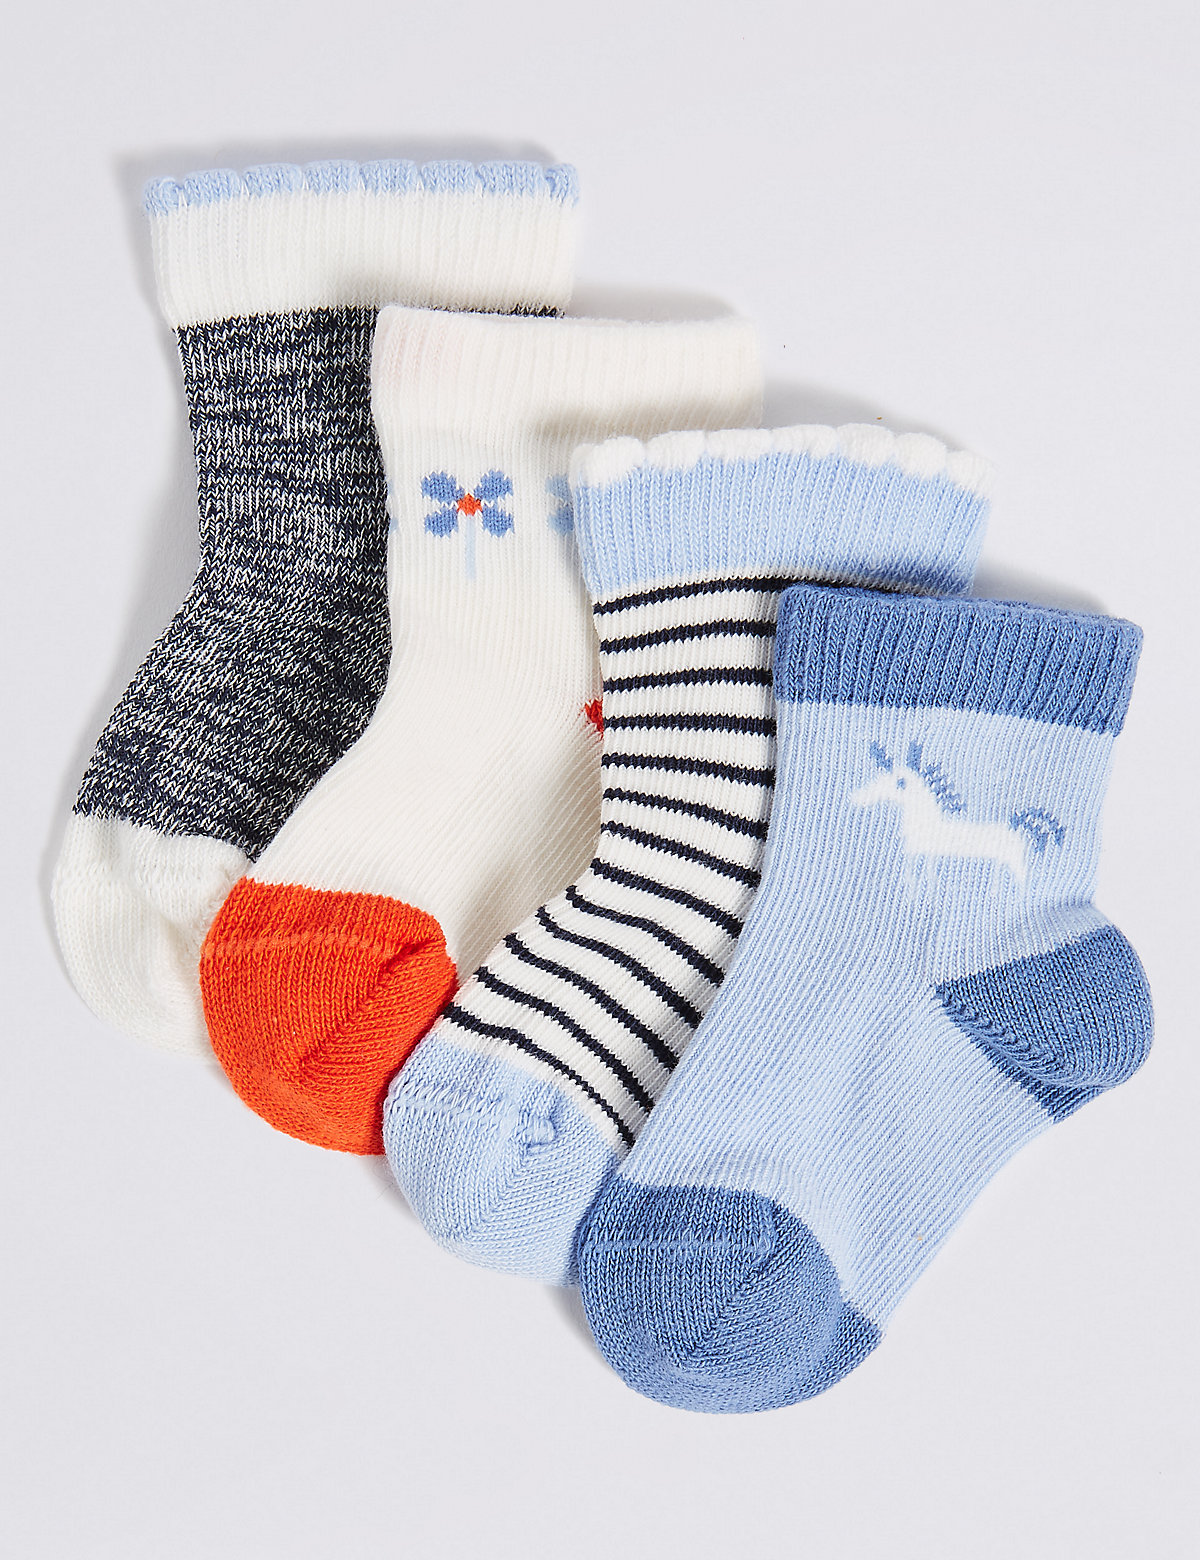 4 Pairs of Cotton Rich StaySoft Assorted Socks (0-24 Months)